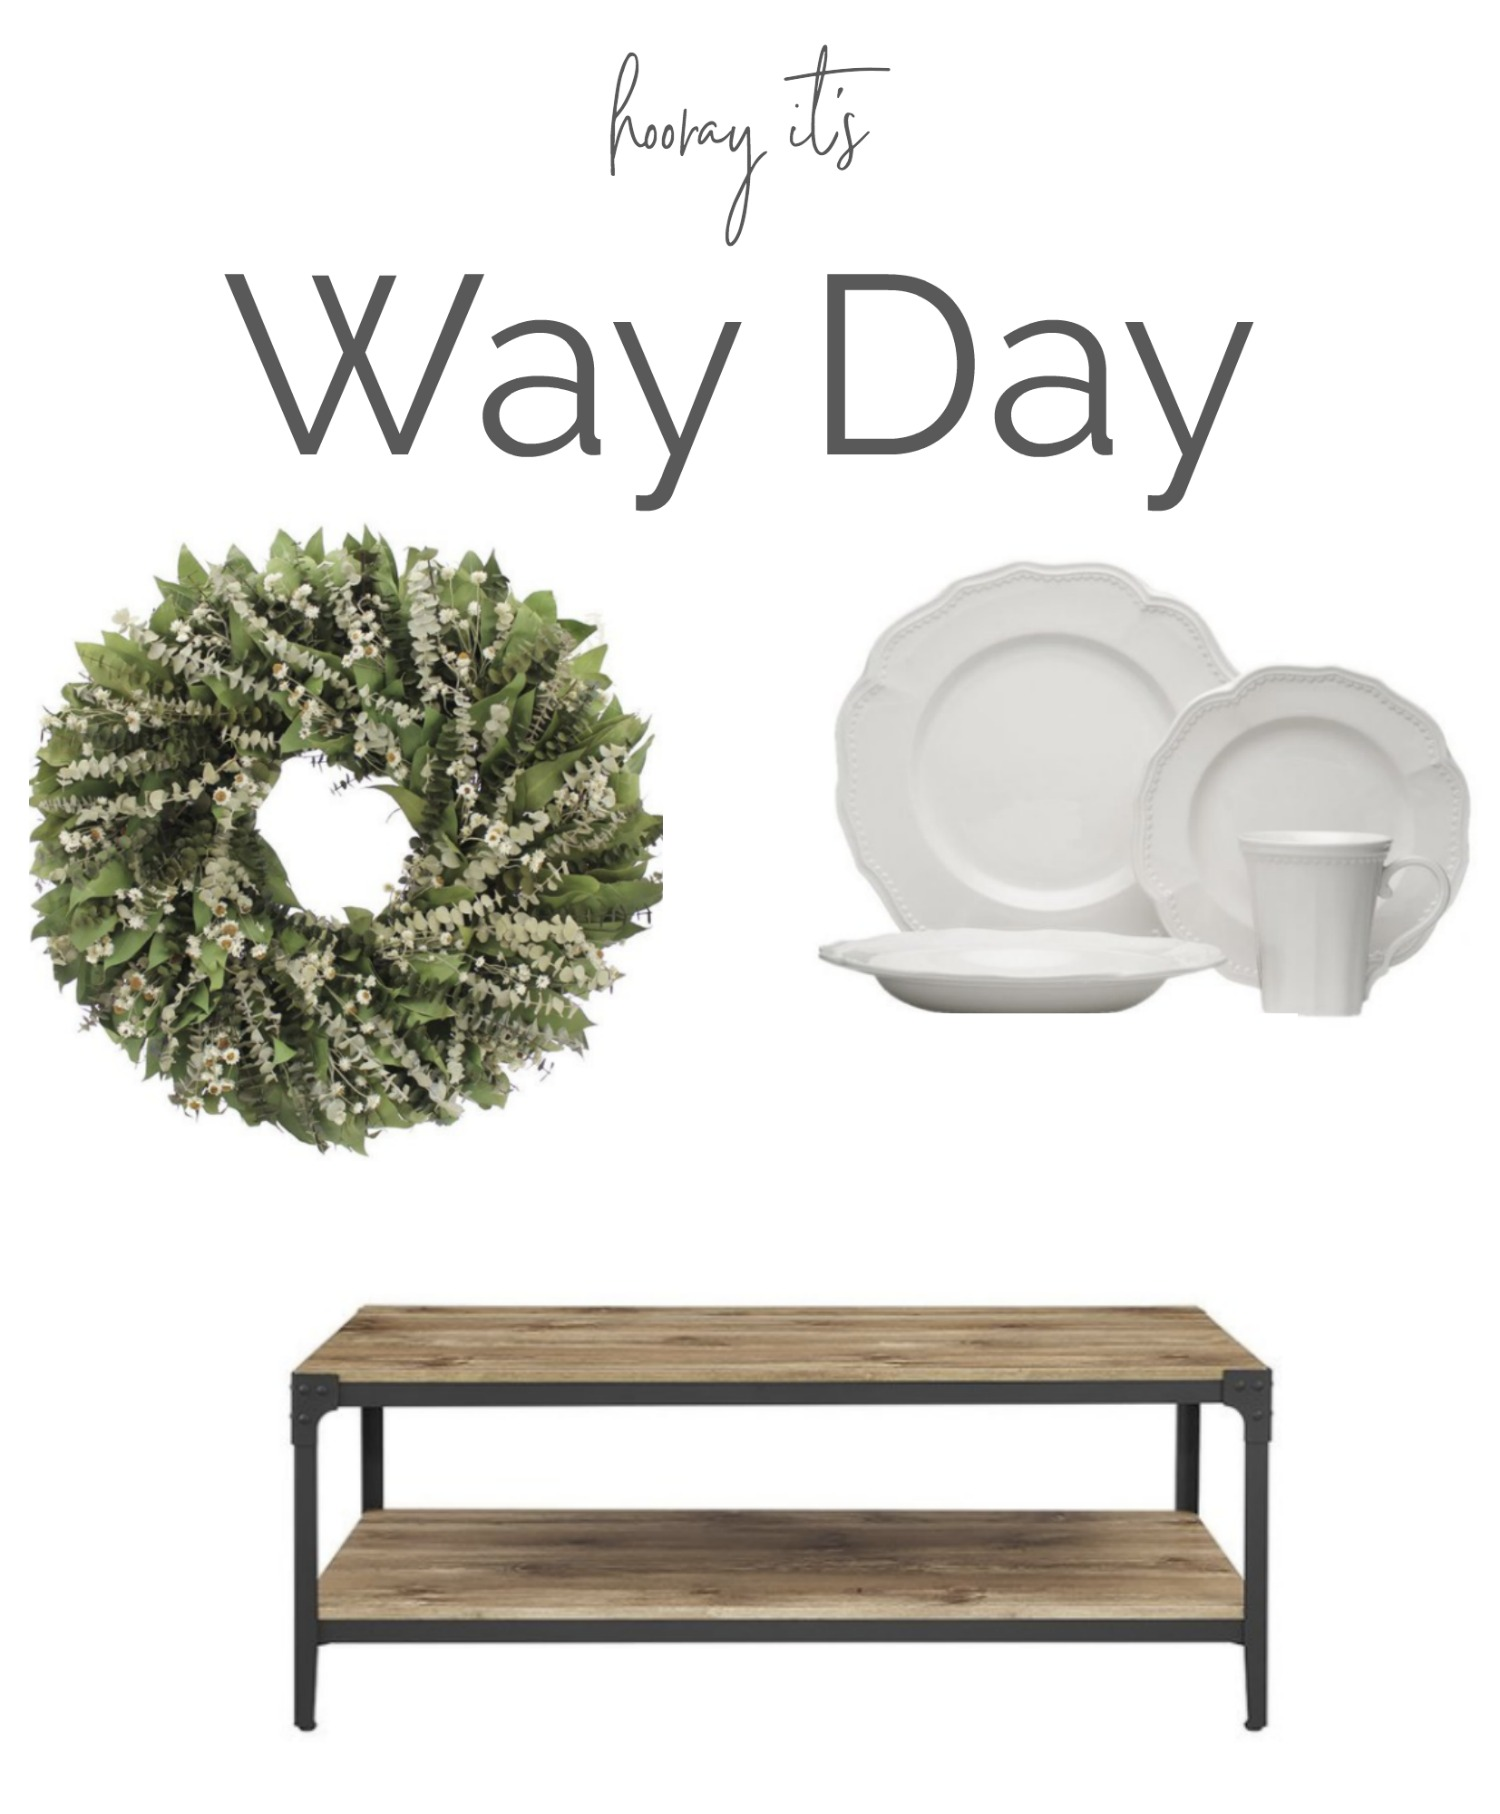 Wayfair One Day Sale!